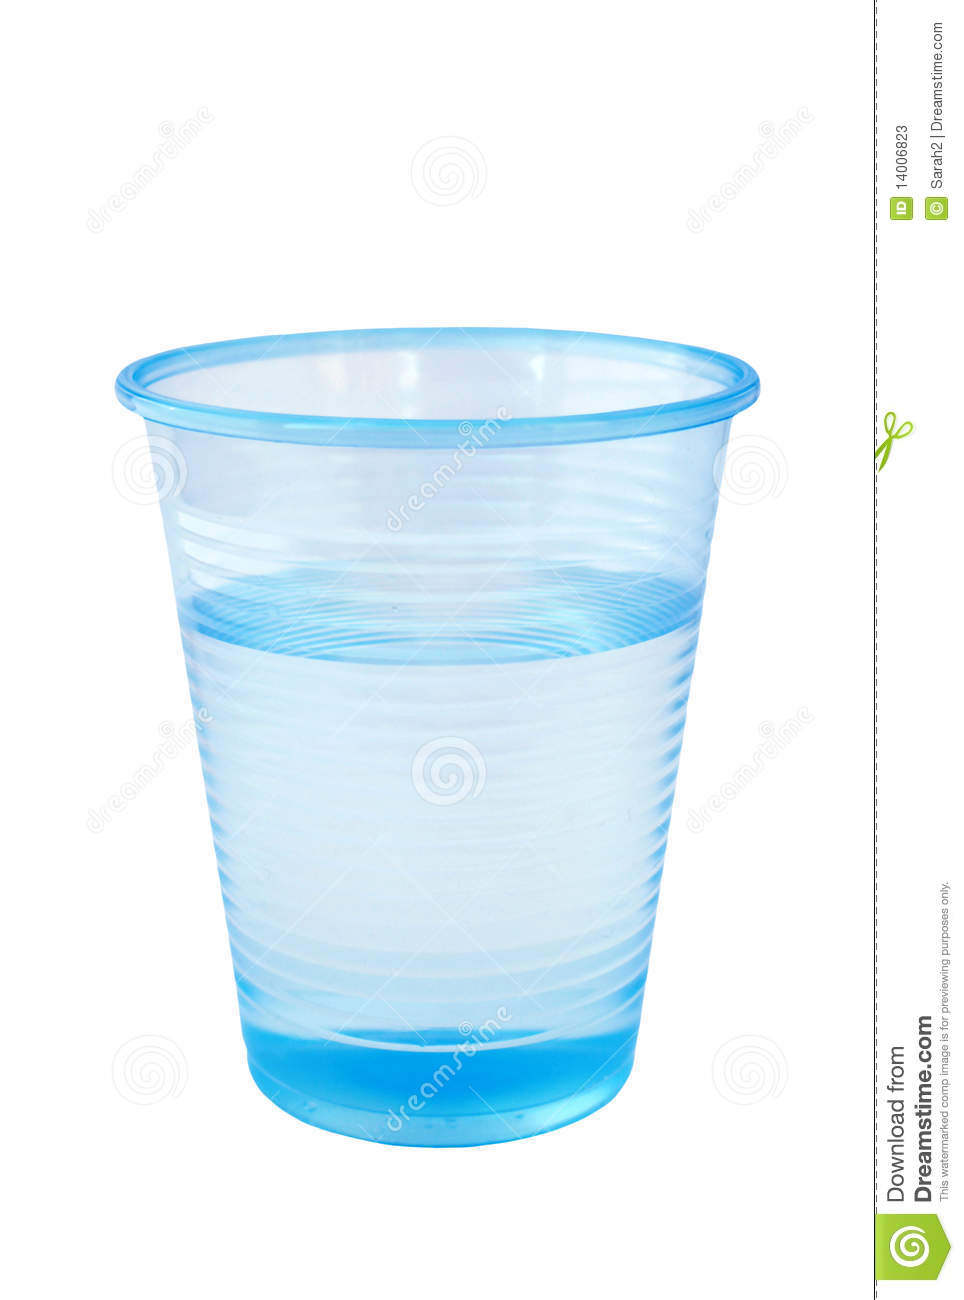 Cup Of Water Stock Photos - Image: 14006823